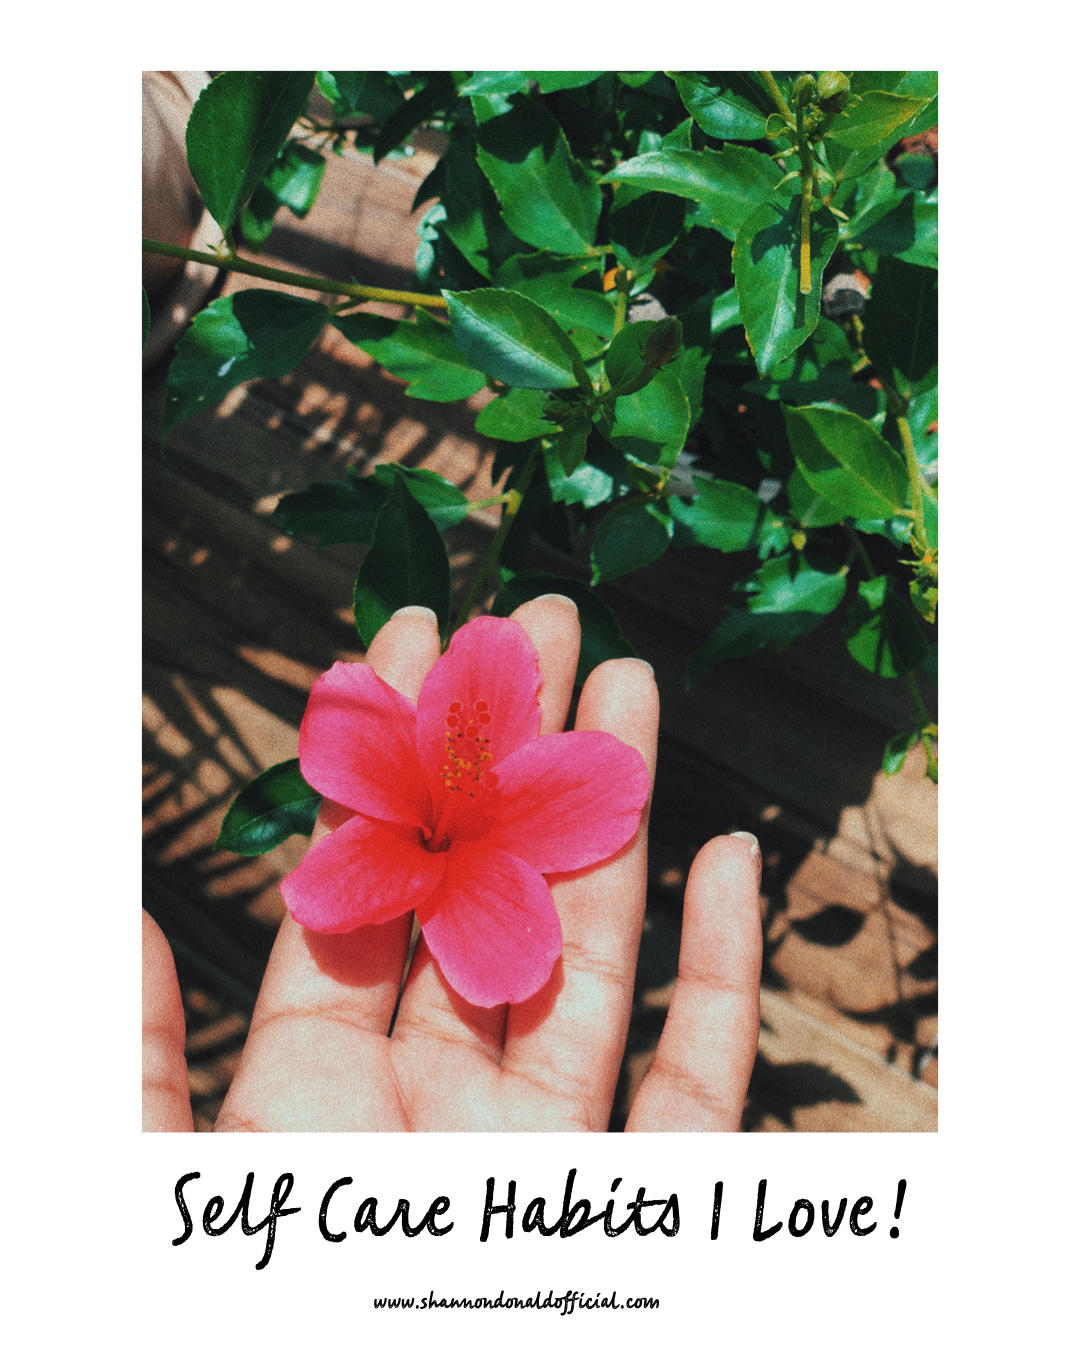 Self Care Habits I Love!